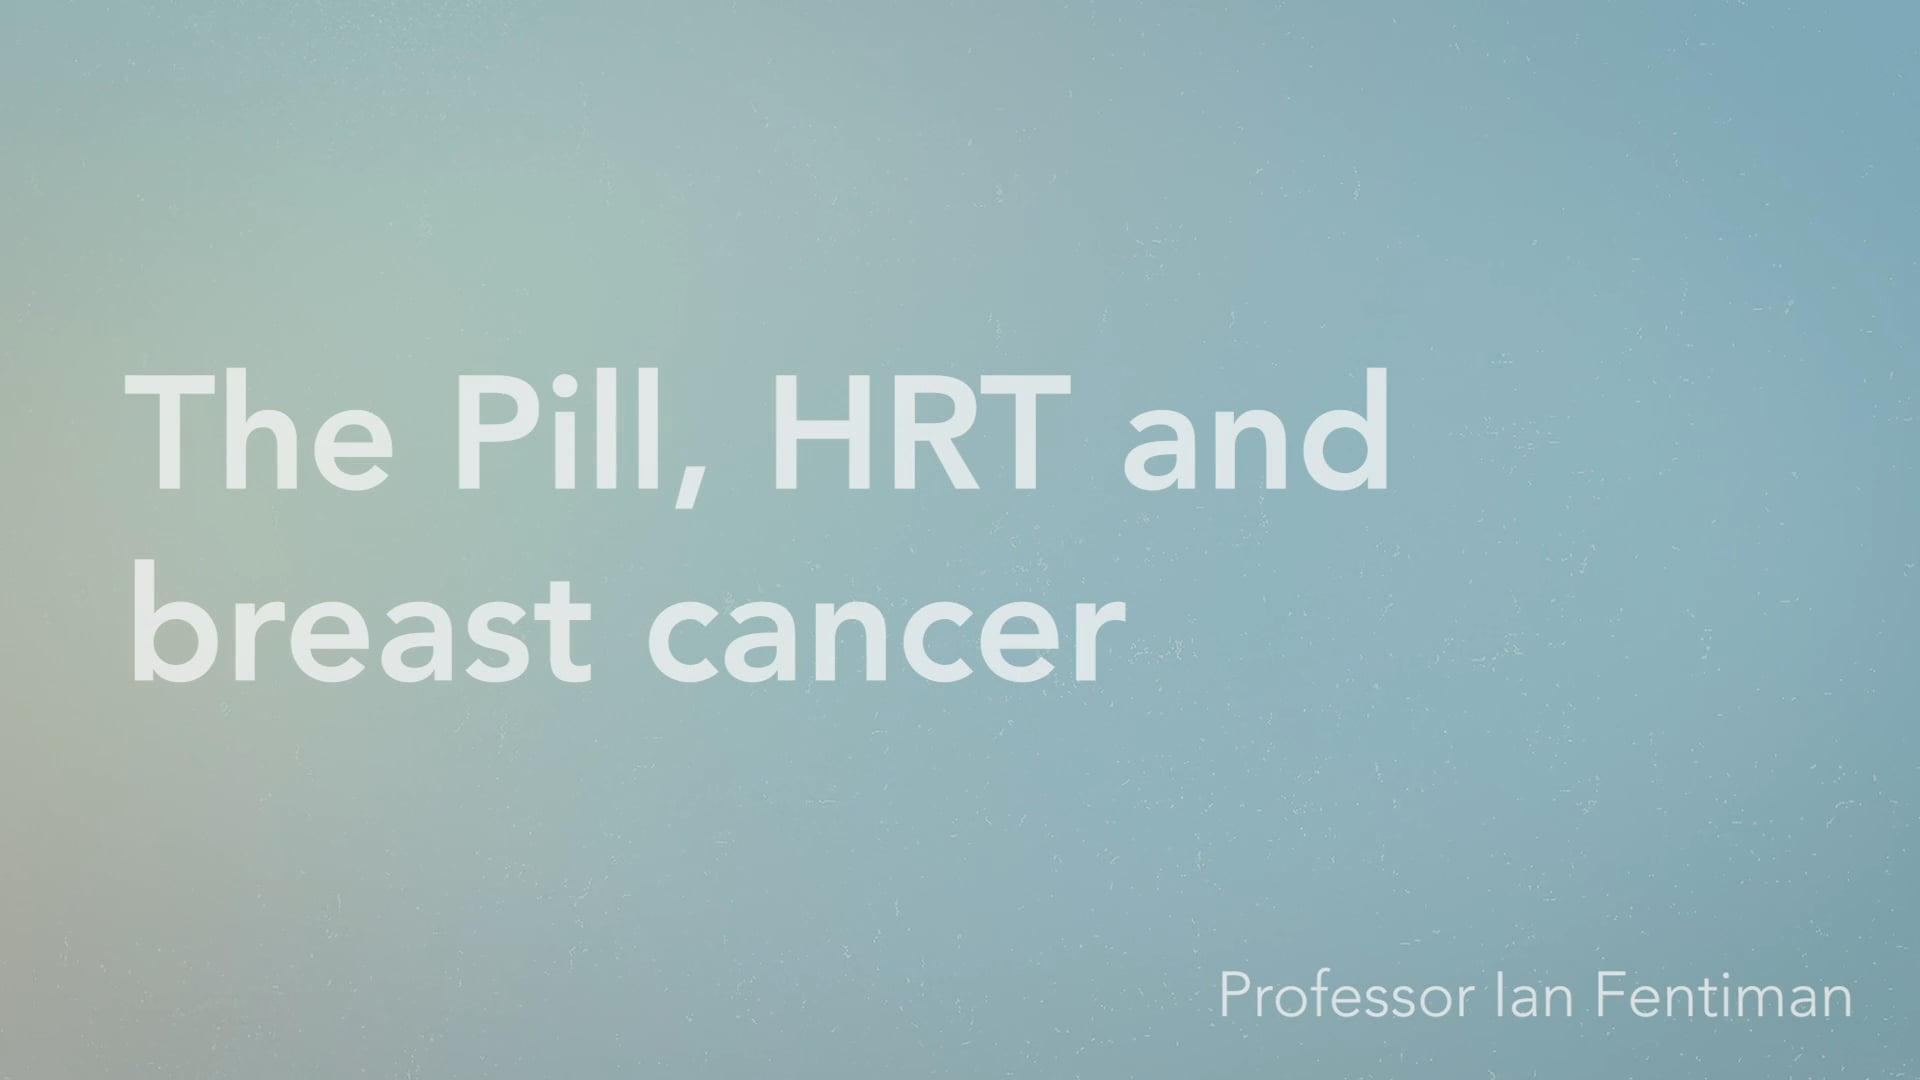 The Pill, HRT and breast cancer - Vimeo thumbnail